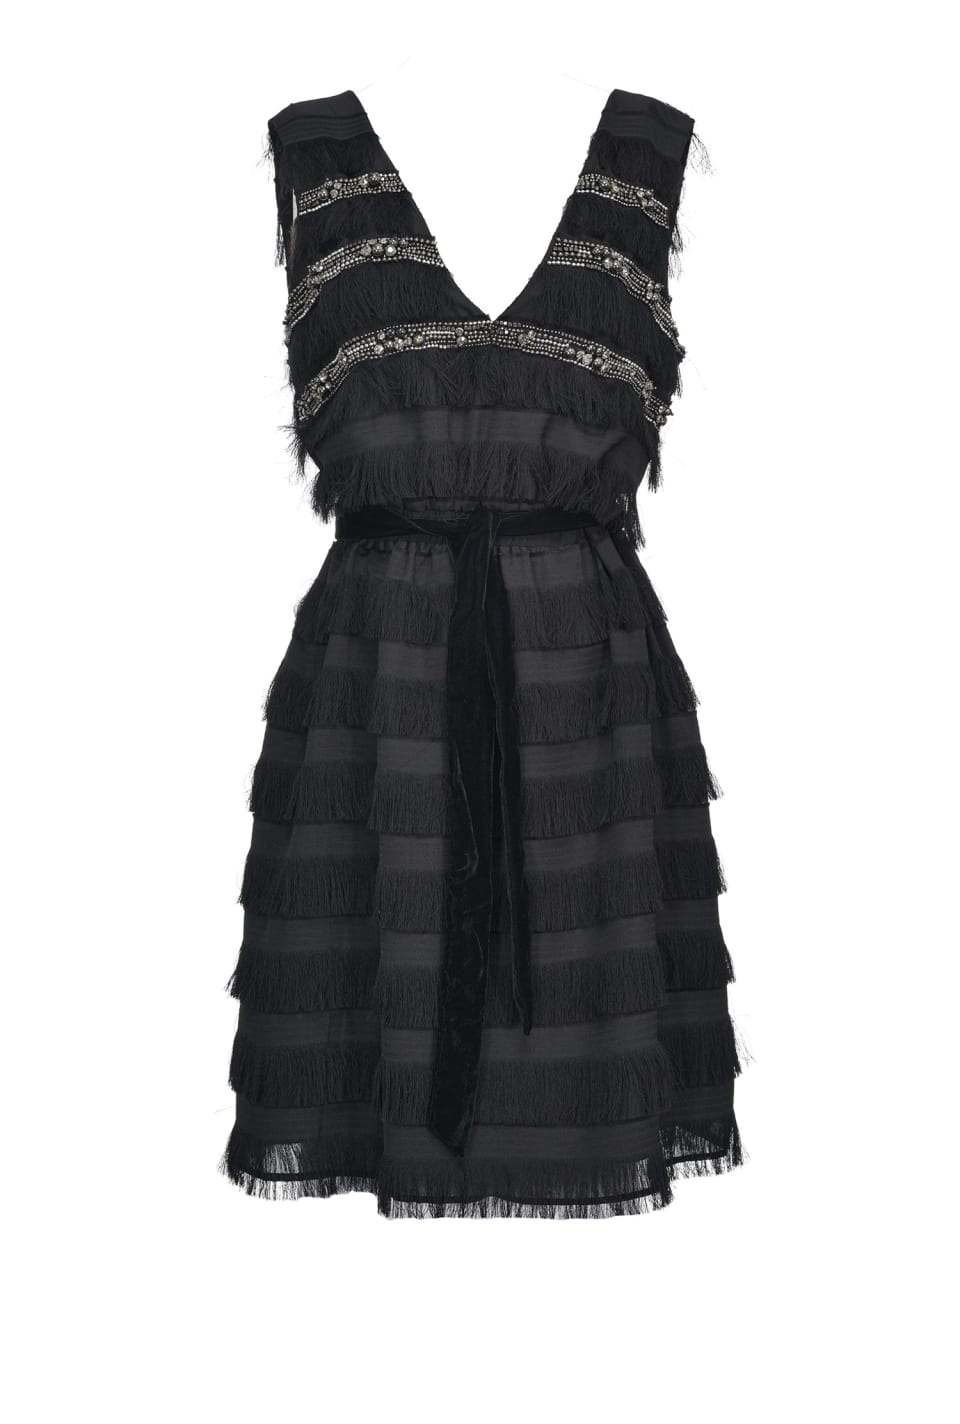 Jacquard dress with fringe and jewel embroidery - Pinko